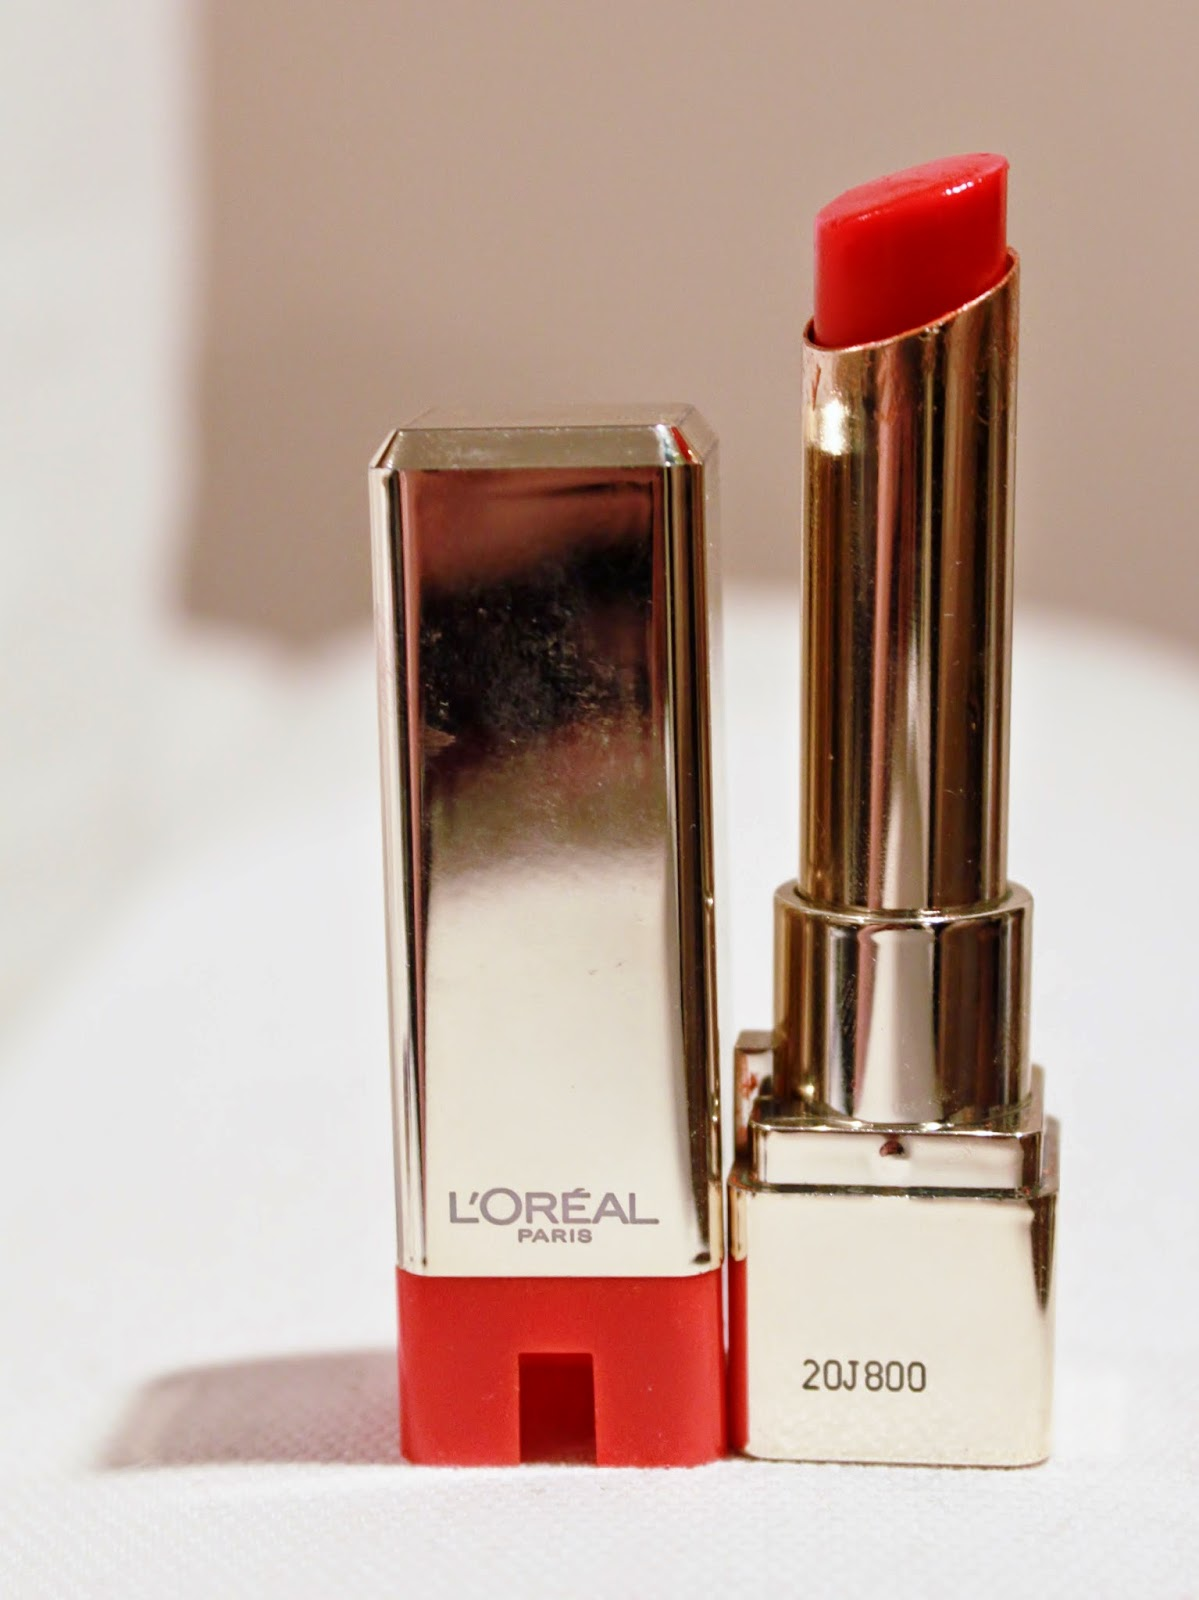 L'oreal Colour Riche in Fiery Veil